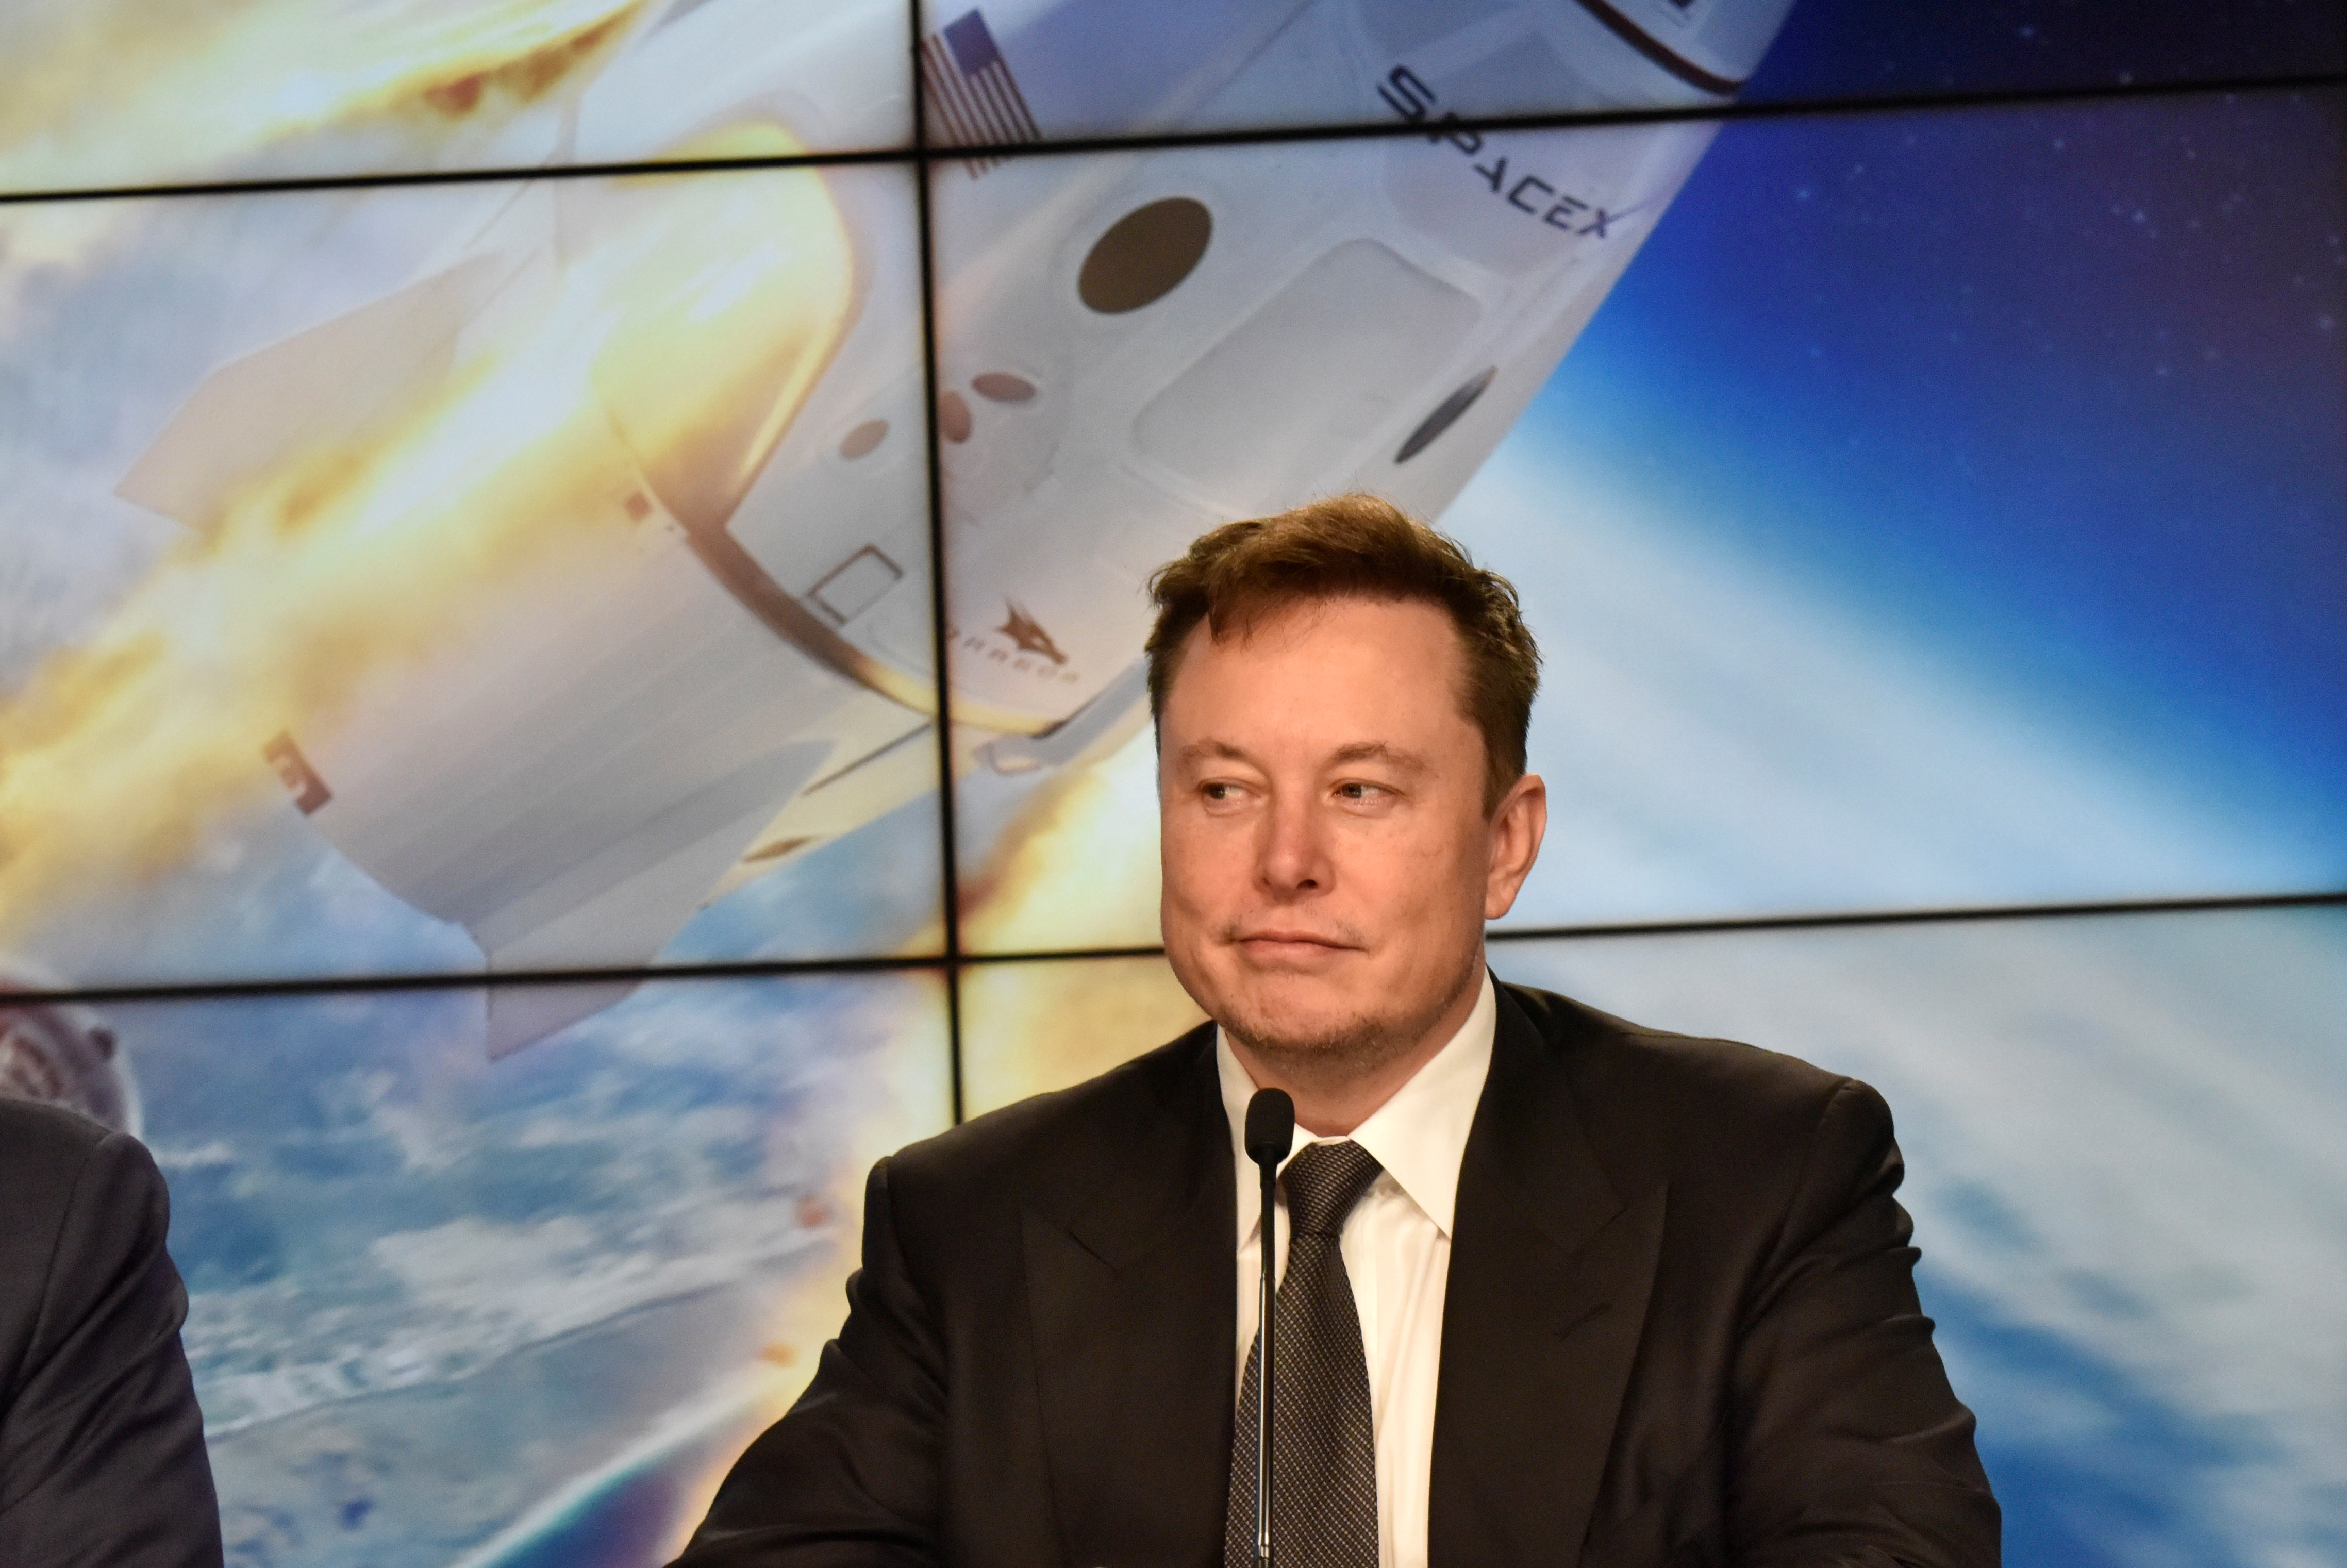 SpaceX founder and chief engineer Elon Musk attends a news conference at the Kennedy Space Center in Cape Canaveral, Florida, U.S. January 19, 2020. REUTERS/Steve Nesius/File Photo